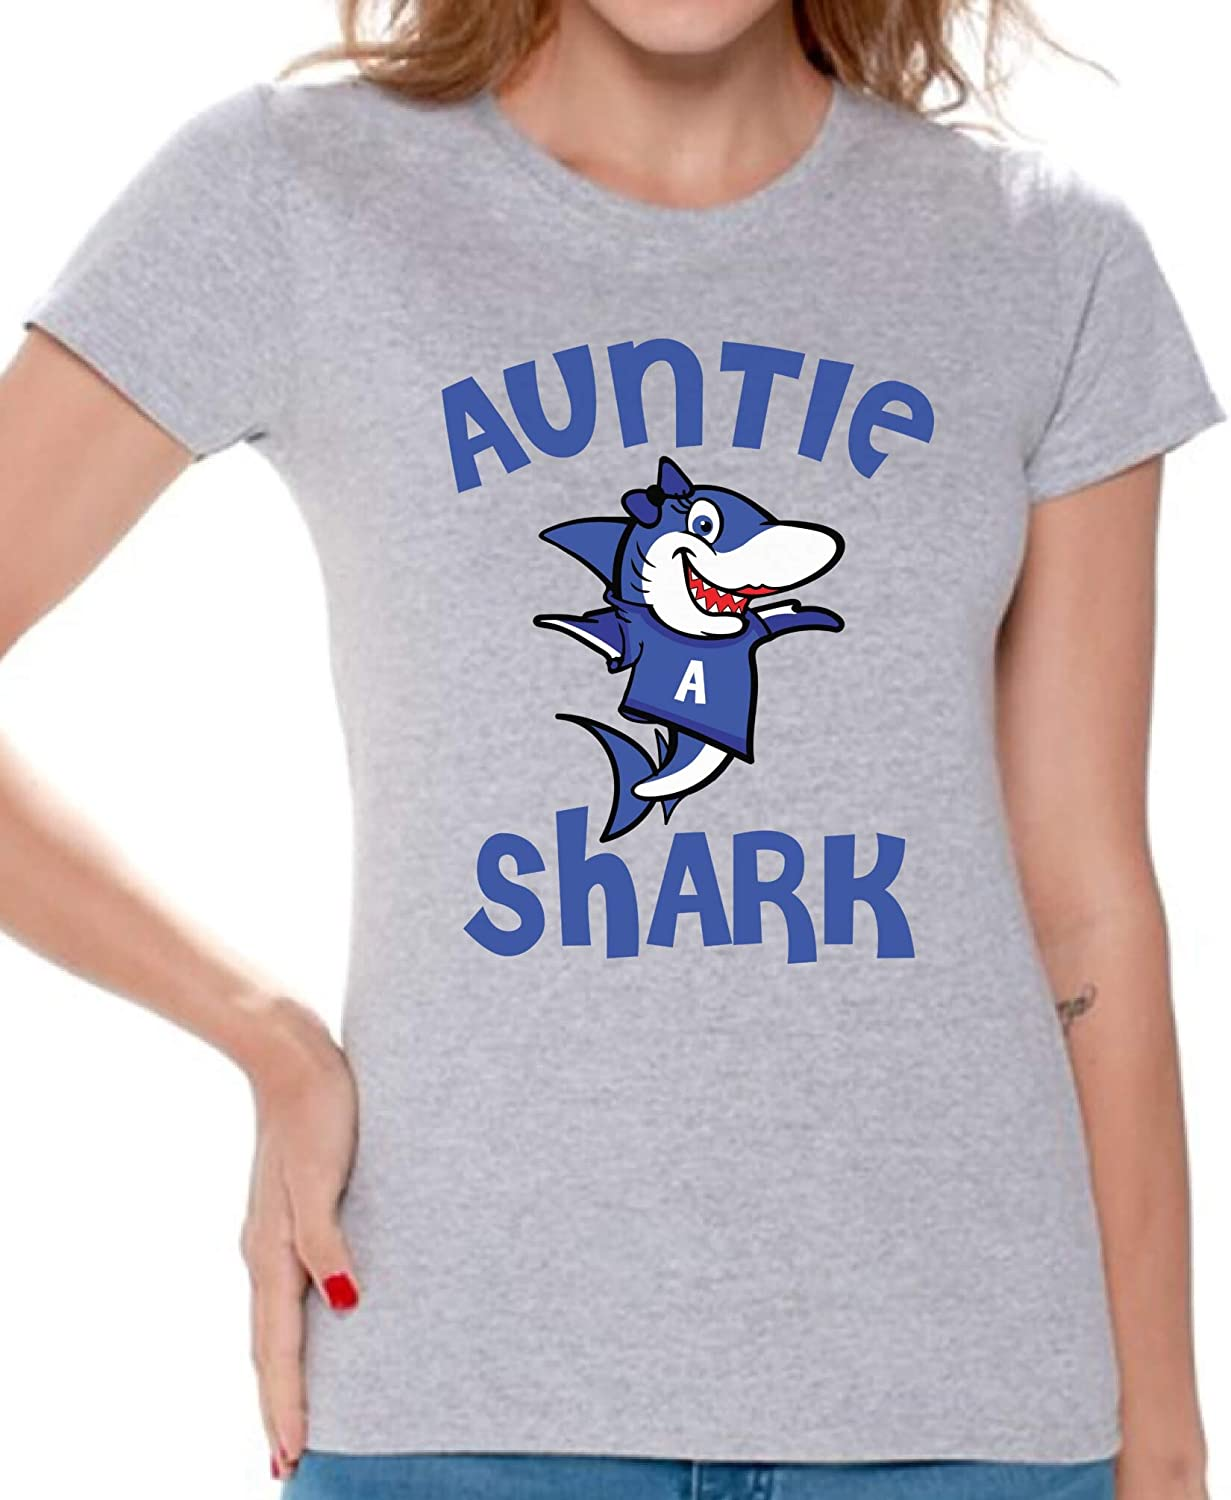 Top 10 Aunty Shark Doo Doo Shirt